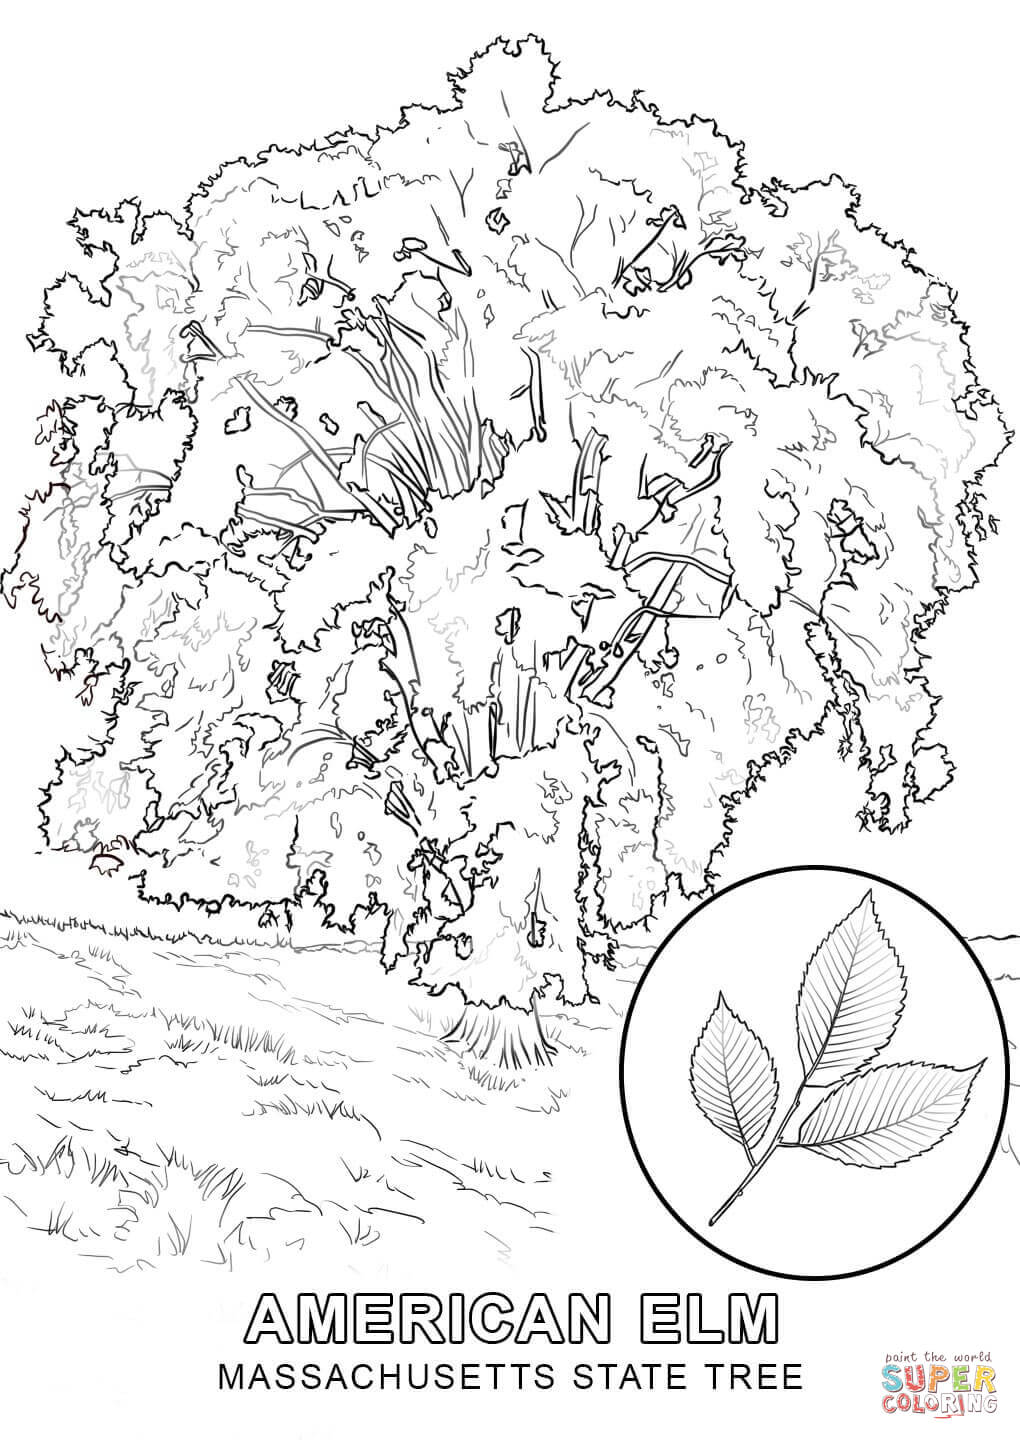 state tree coloring pages iowa state tree coloring page free printable coloring pages pages coloring tree state